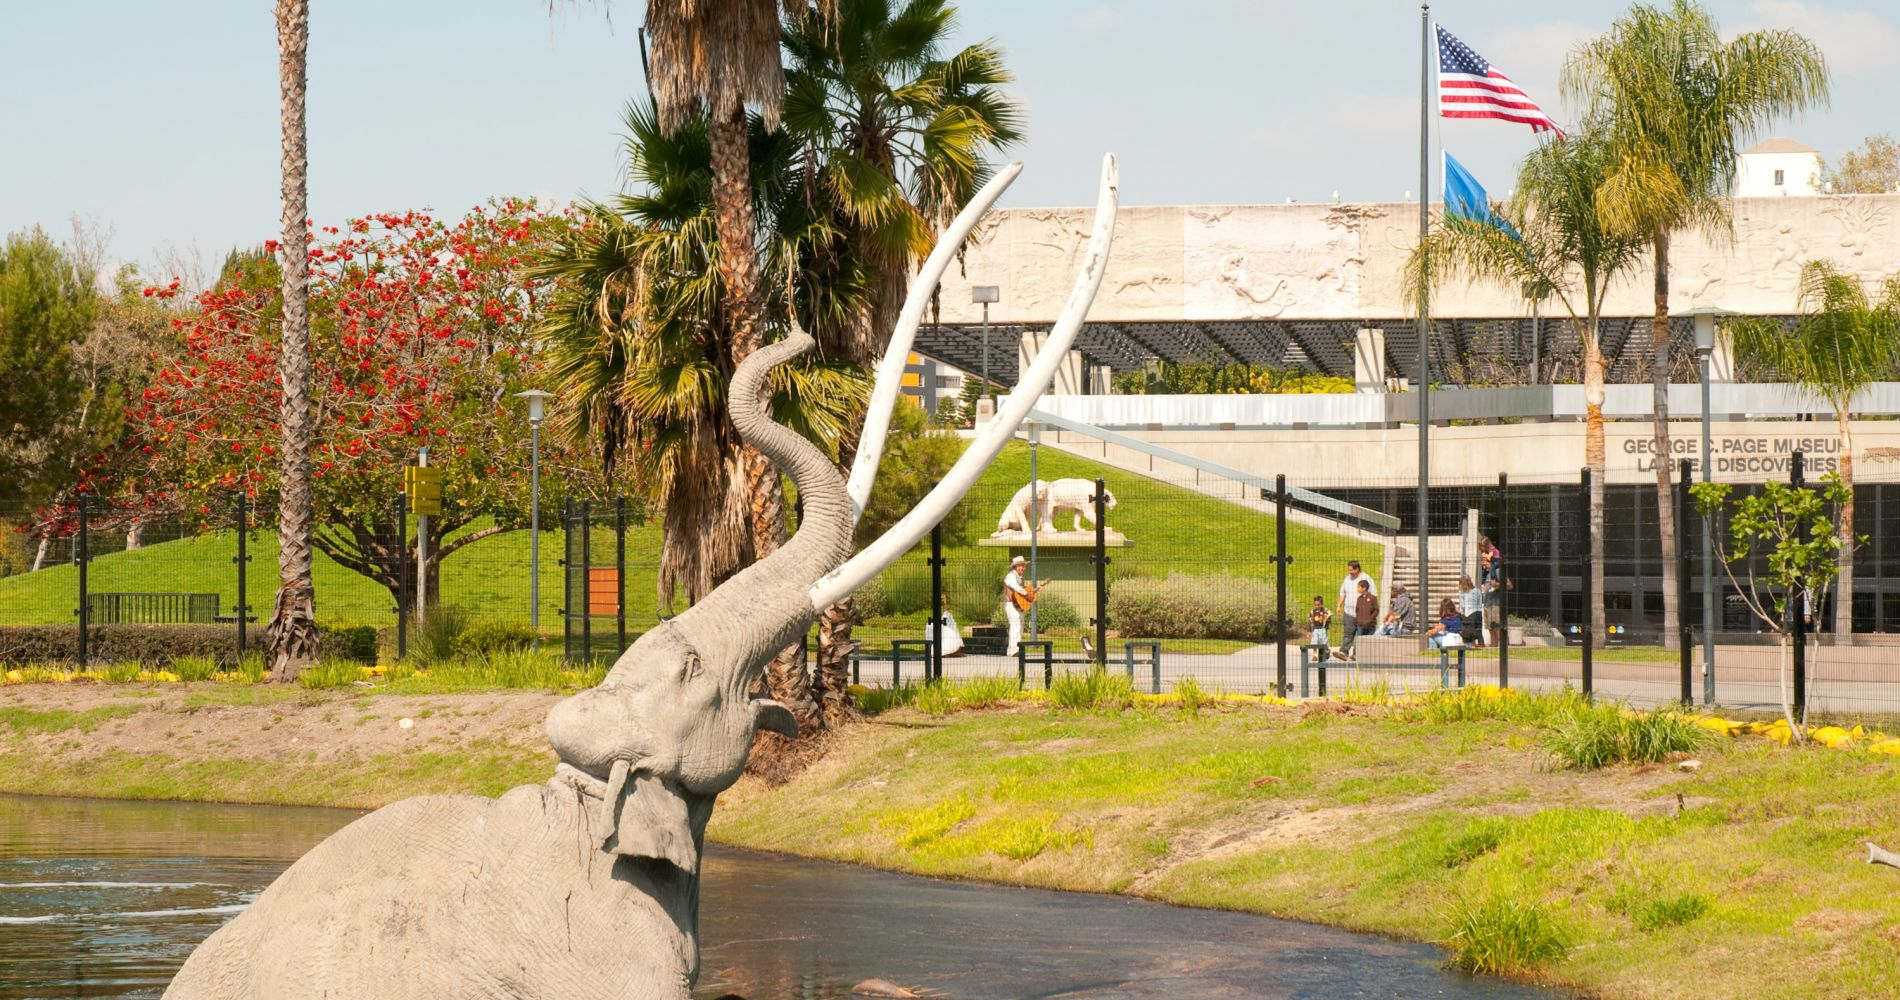 La Brea Tar Pits and Museum and other attractions in LA